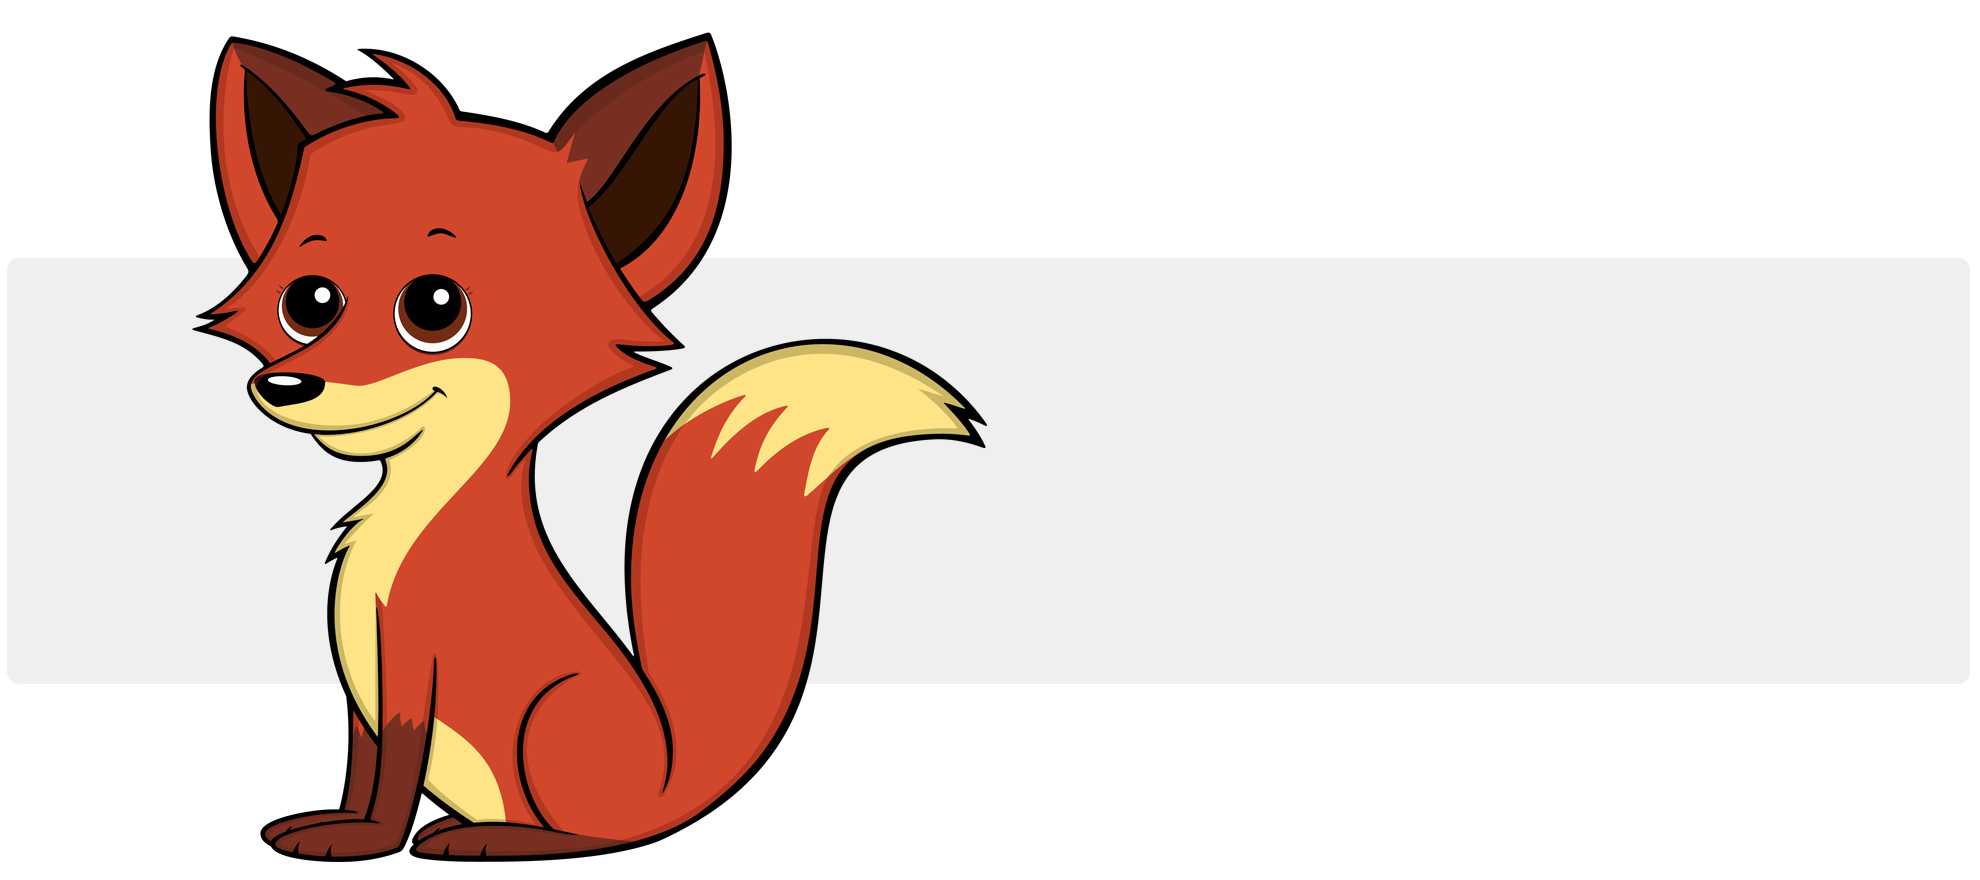 Cute Cartoon Fox - A cute smiling red, brown and cream colored cartoon fox with pointy ears and a large bushy tail.